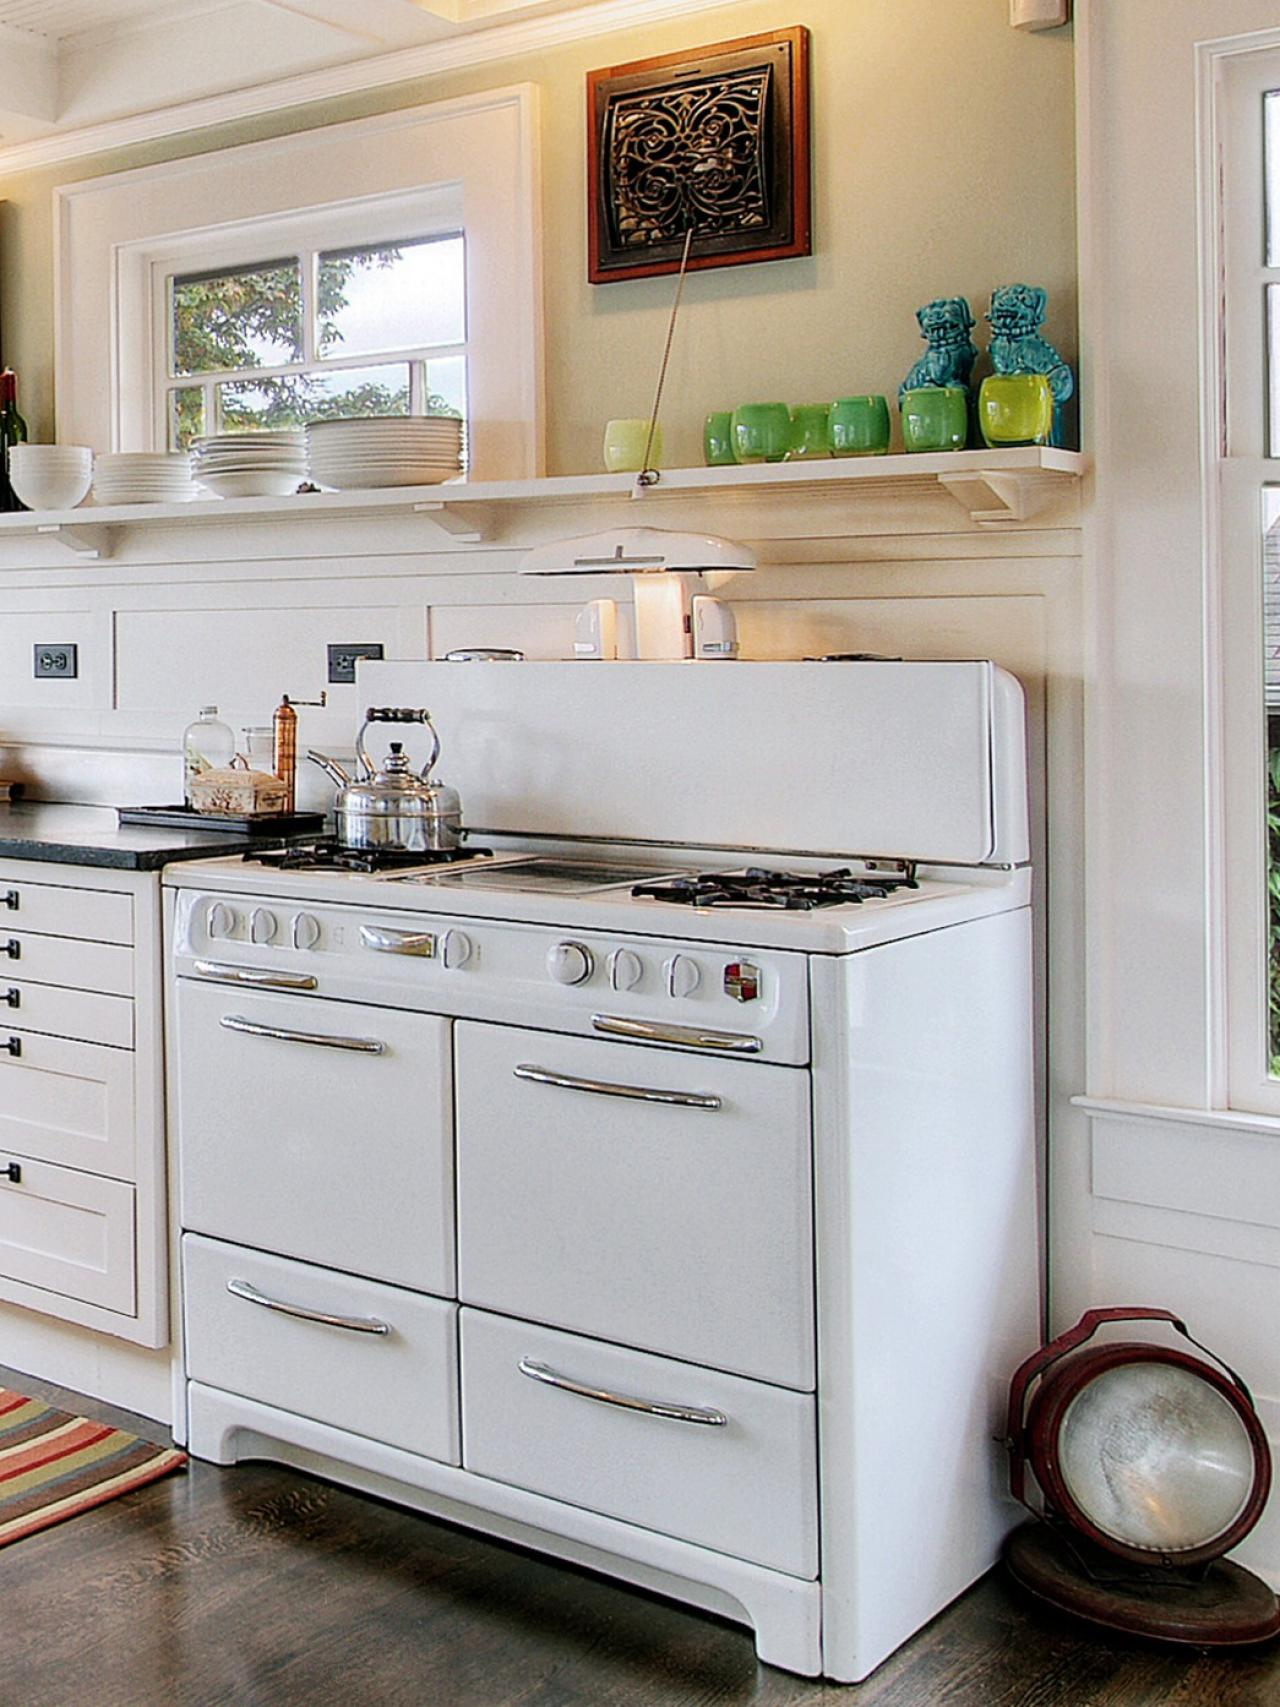 Remodeling Your Kitchen With Salvaged Items DIY - Kitchen design and remodeling